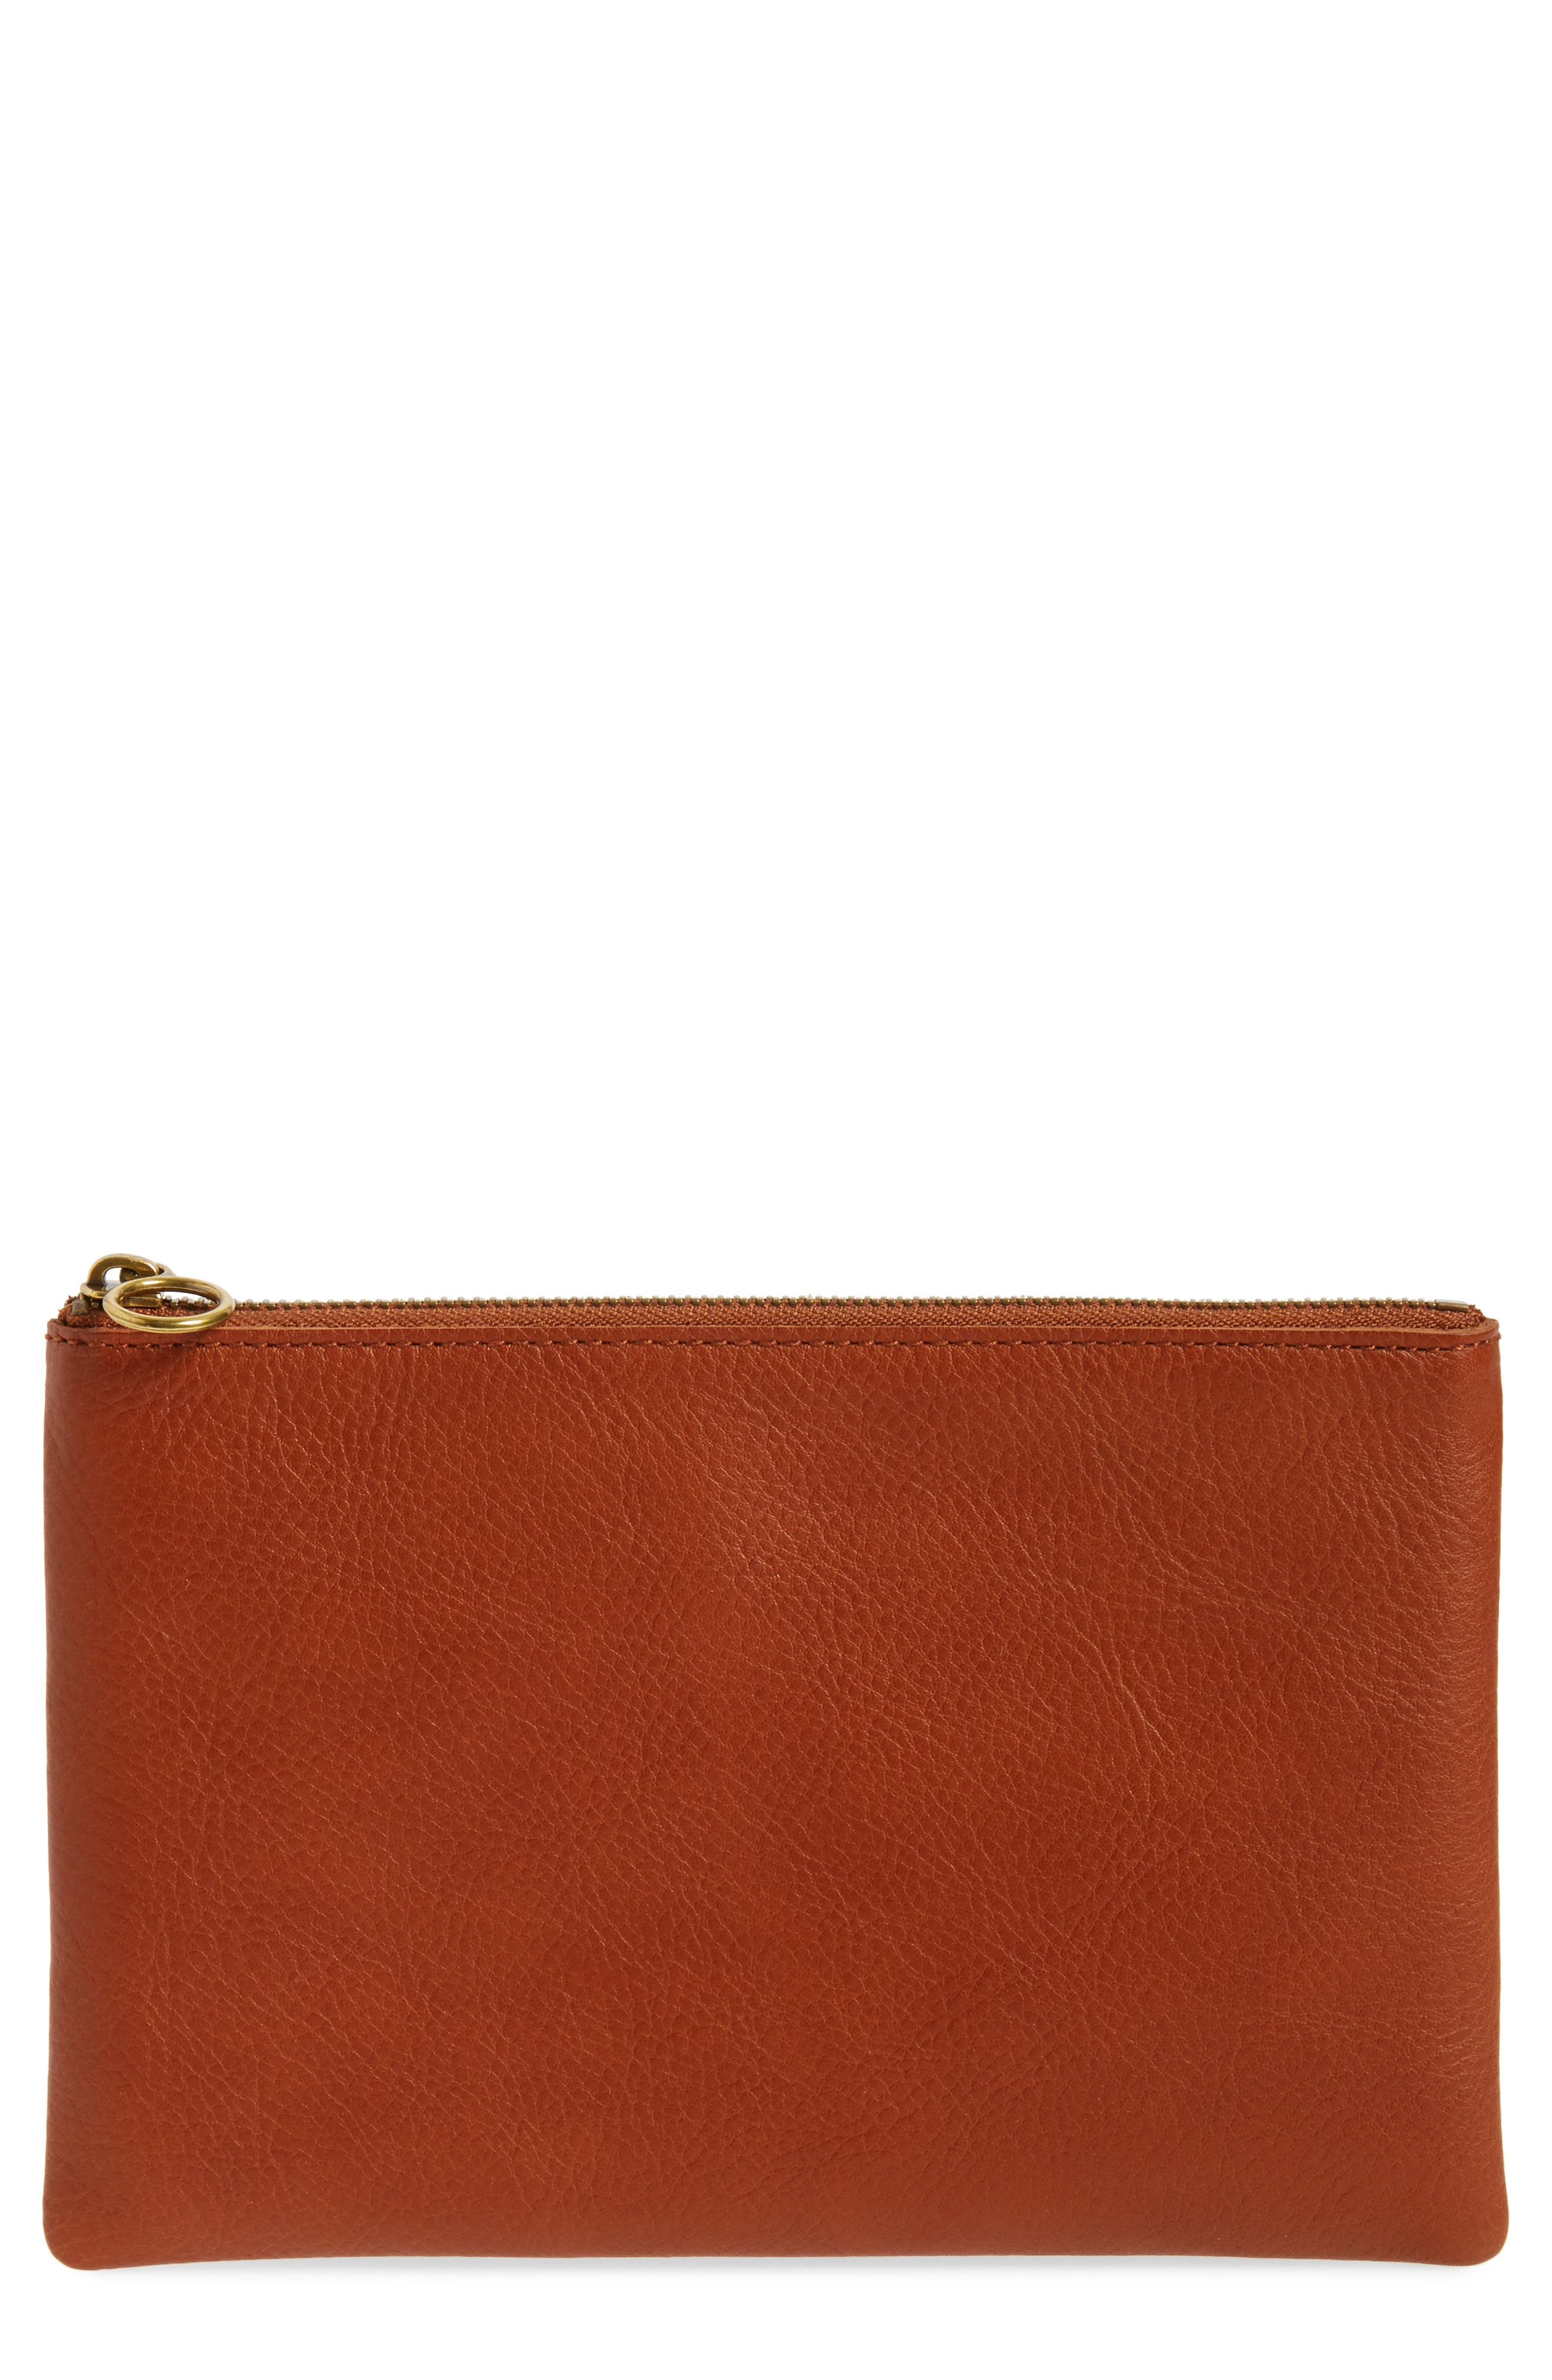 Madewell Medium Victory Leather Pouch